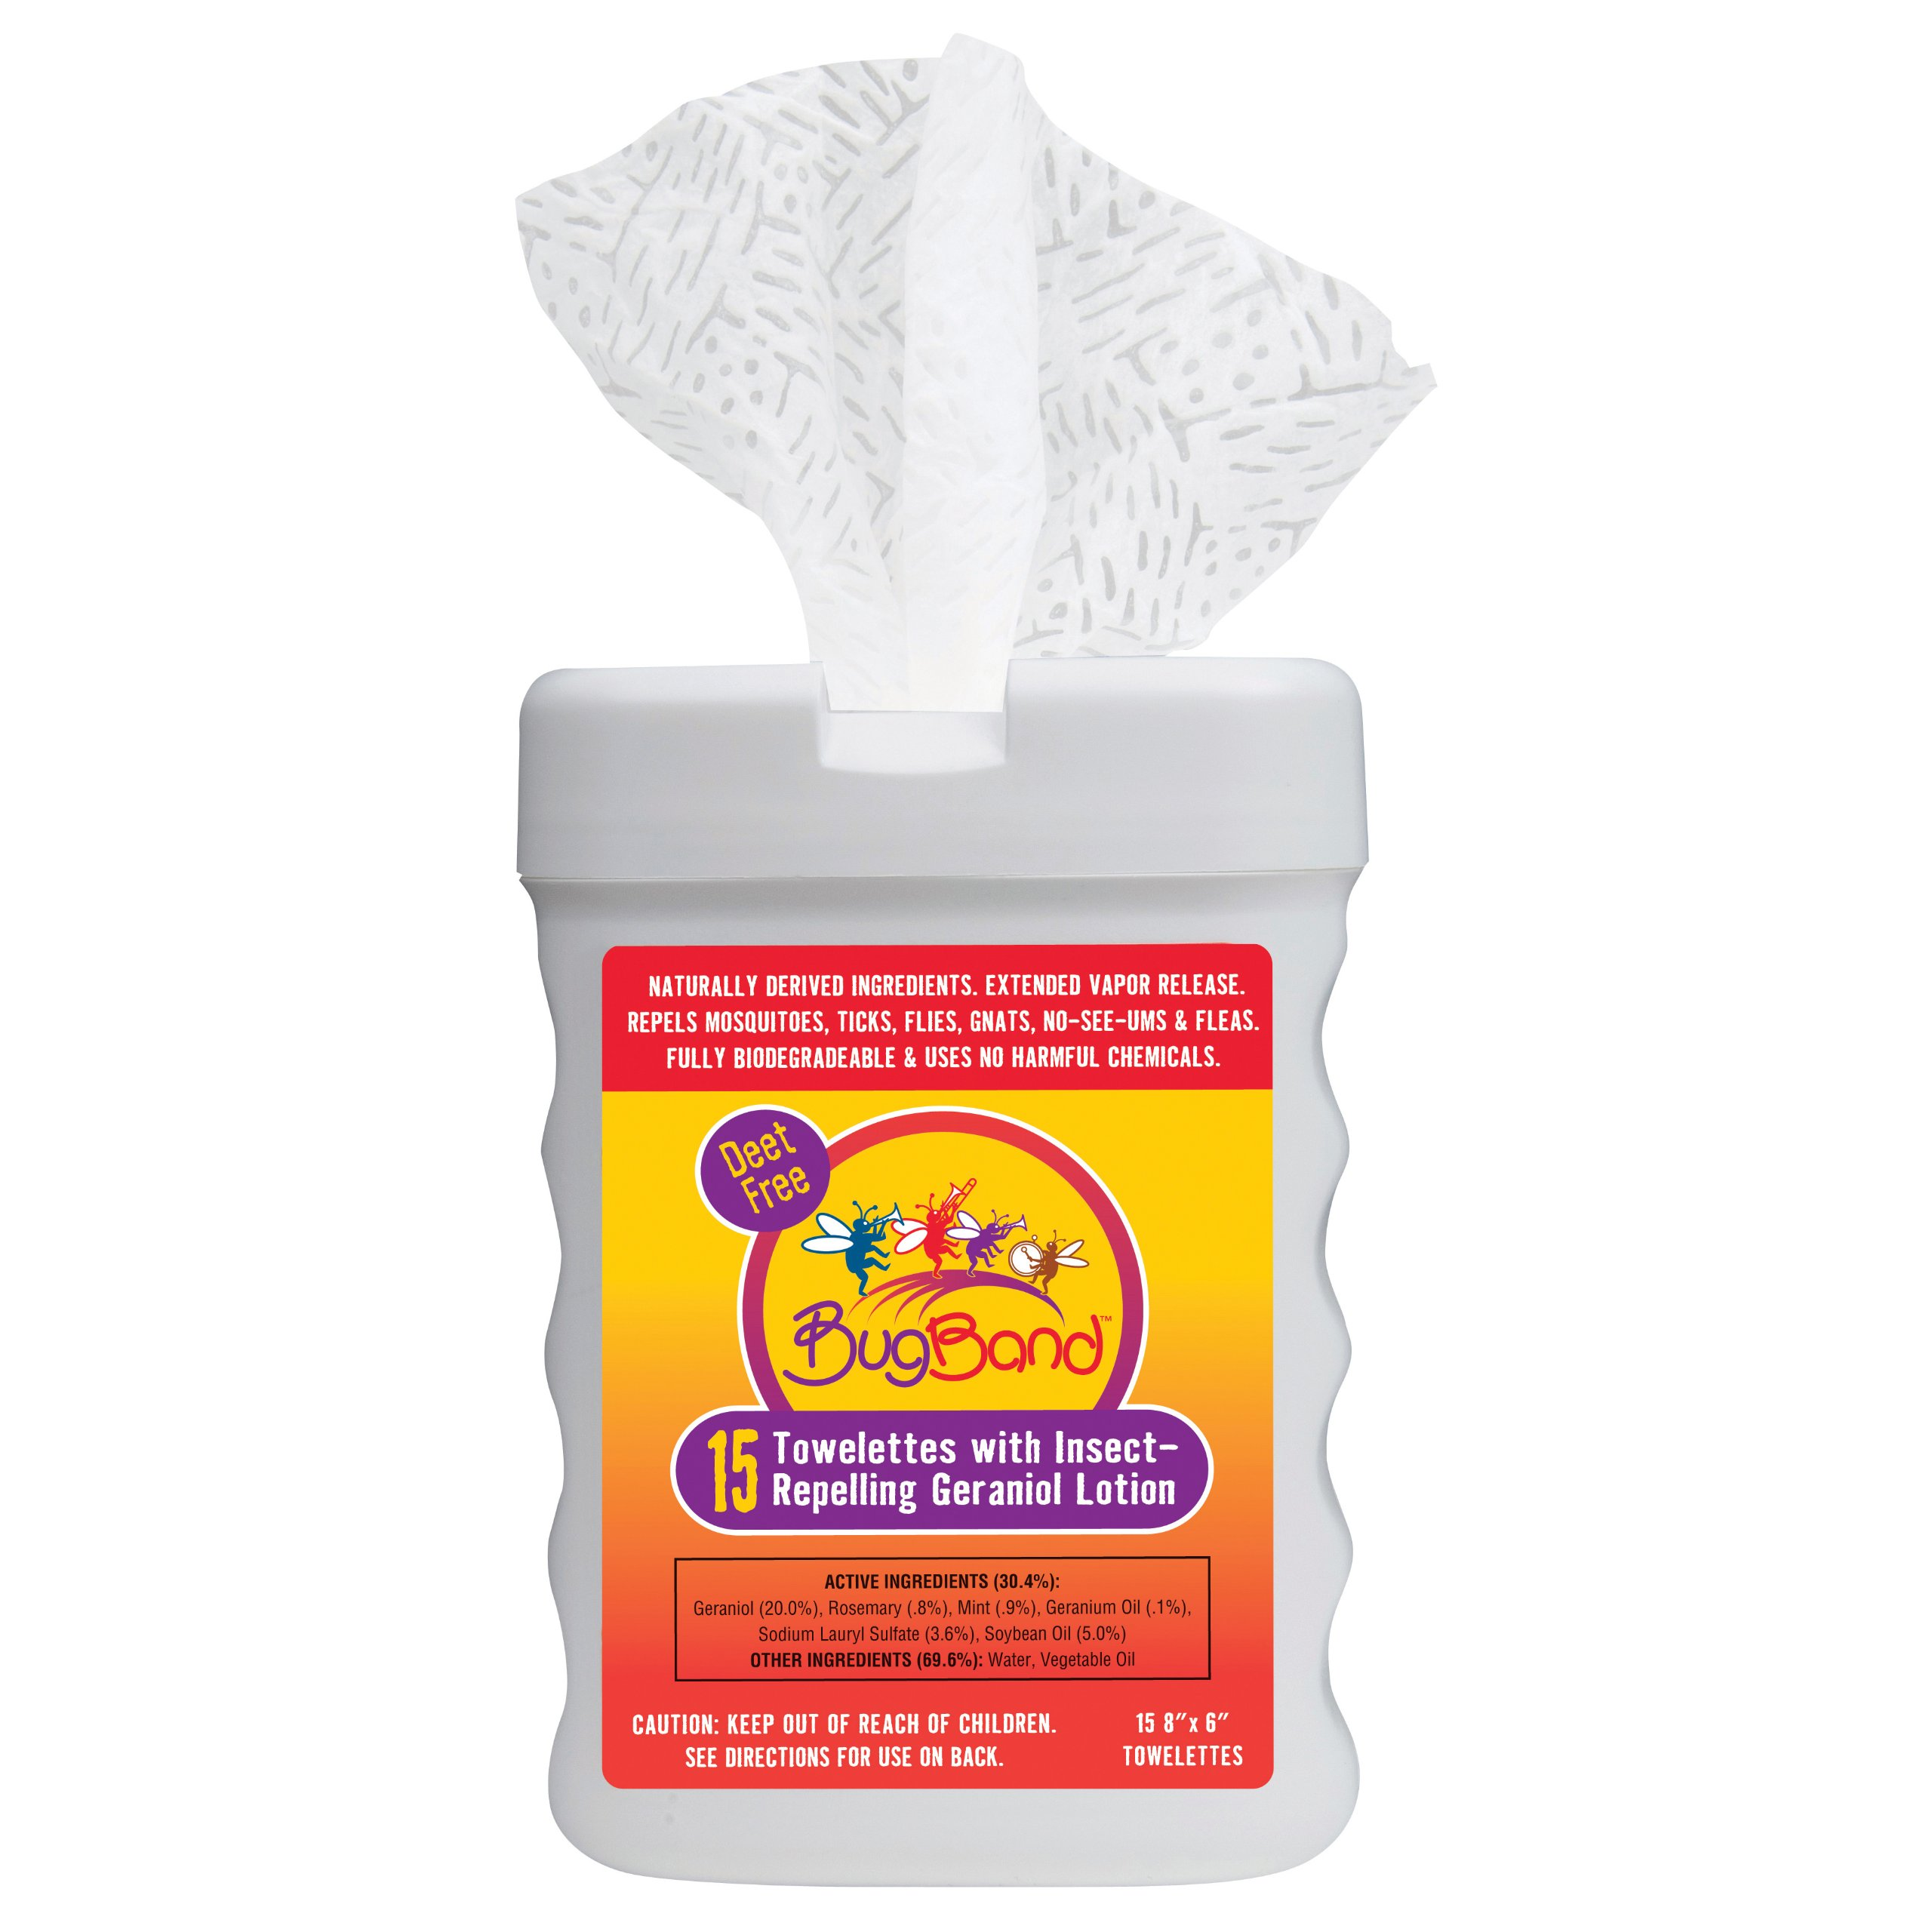 BugBand 88919 Towelette Tub with Insect Repelleing Geraniol Lotion, 15 Count